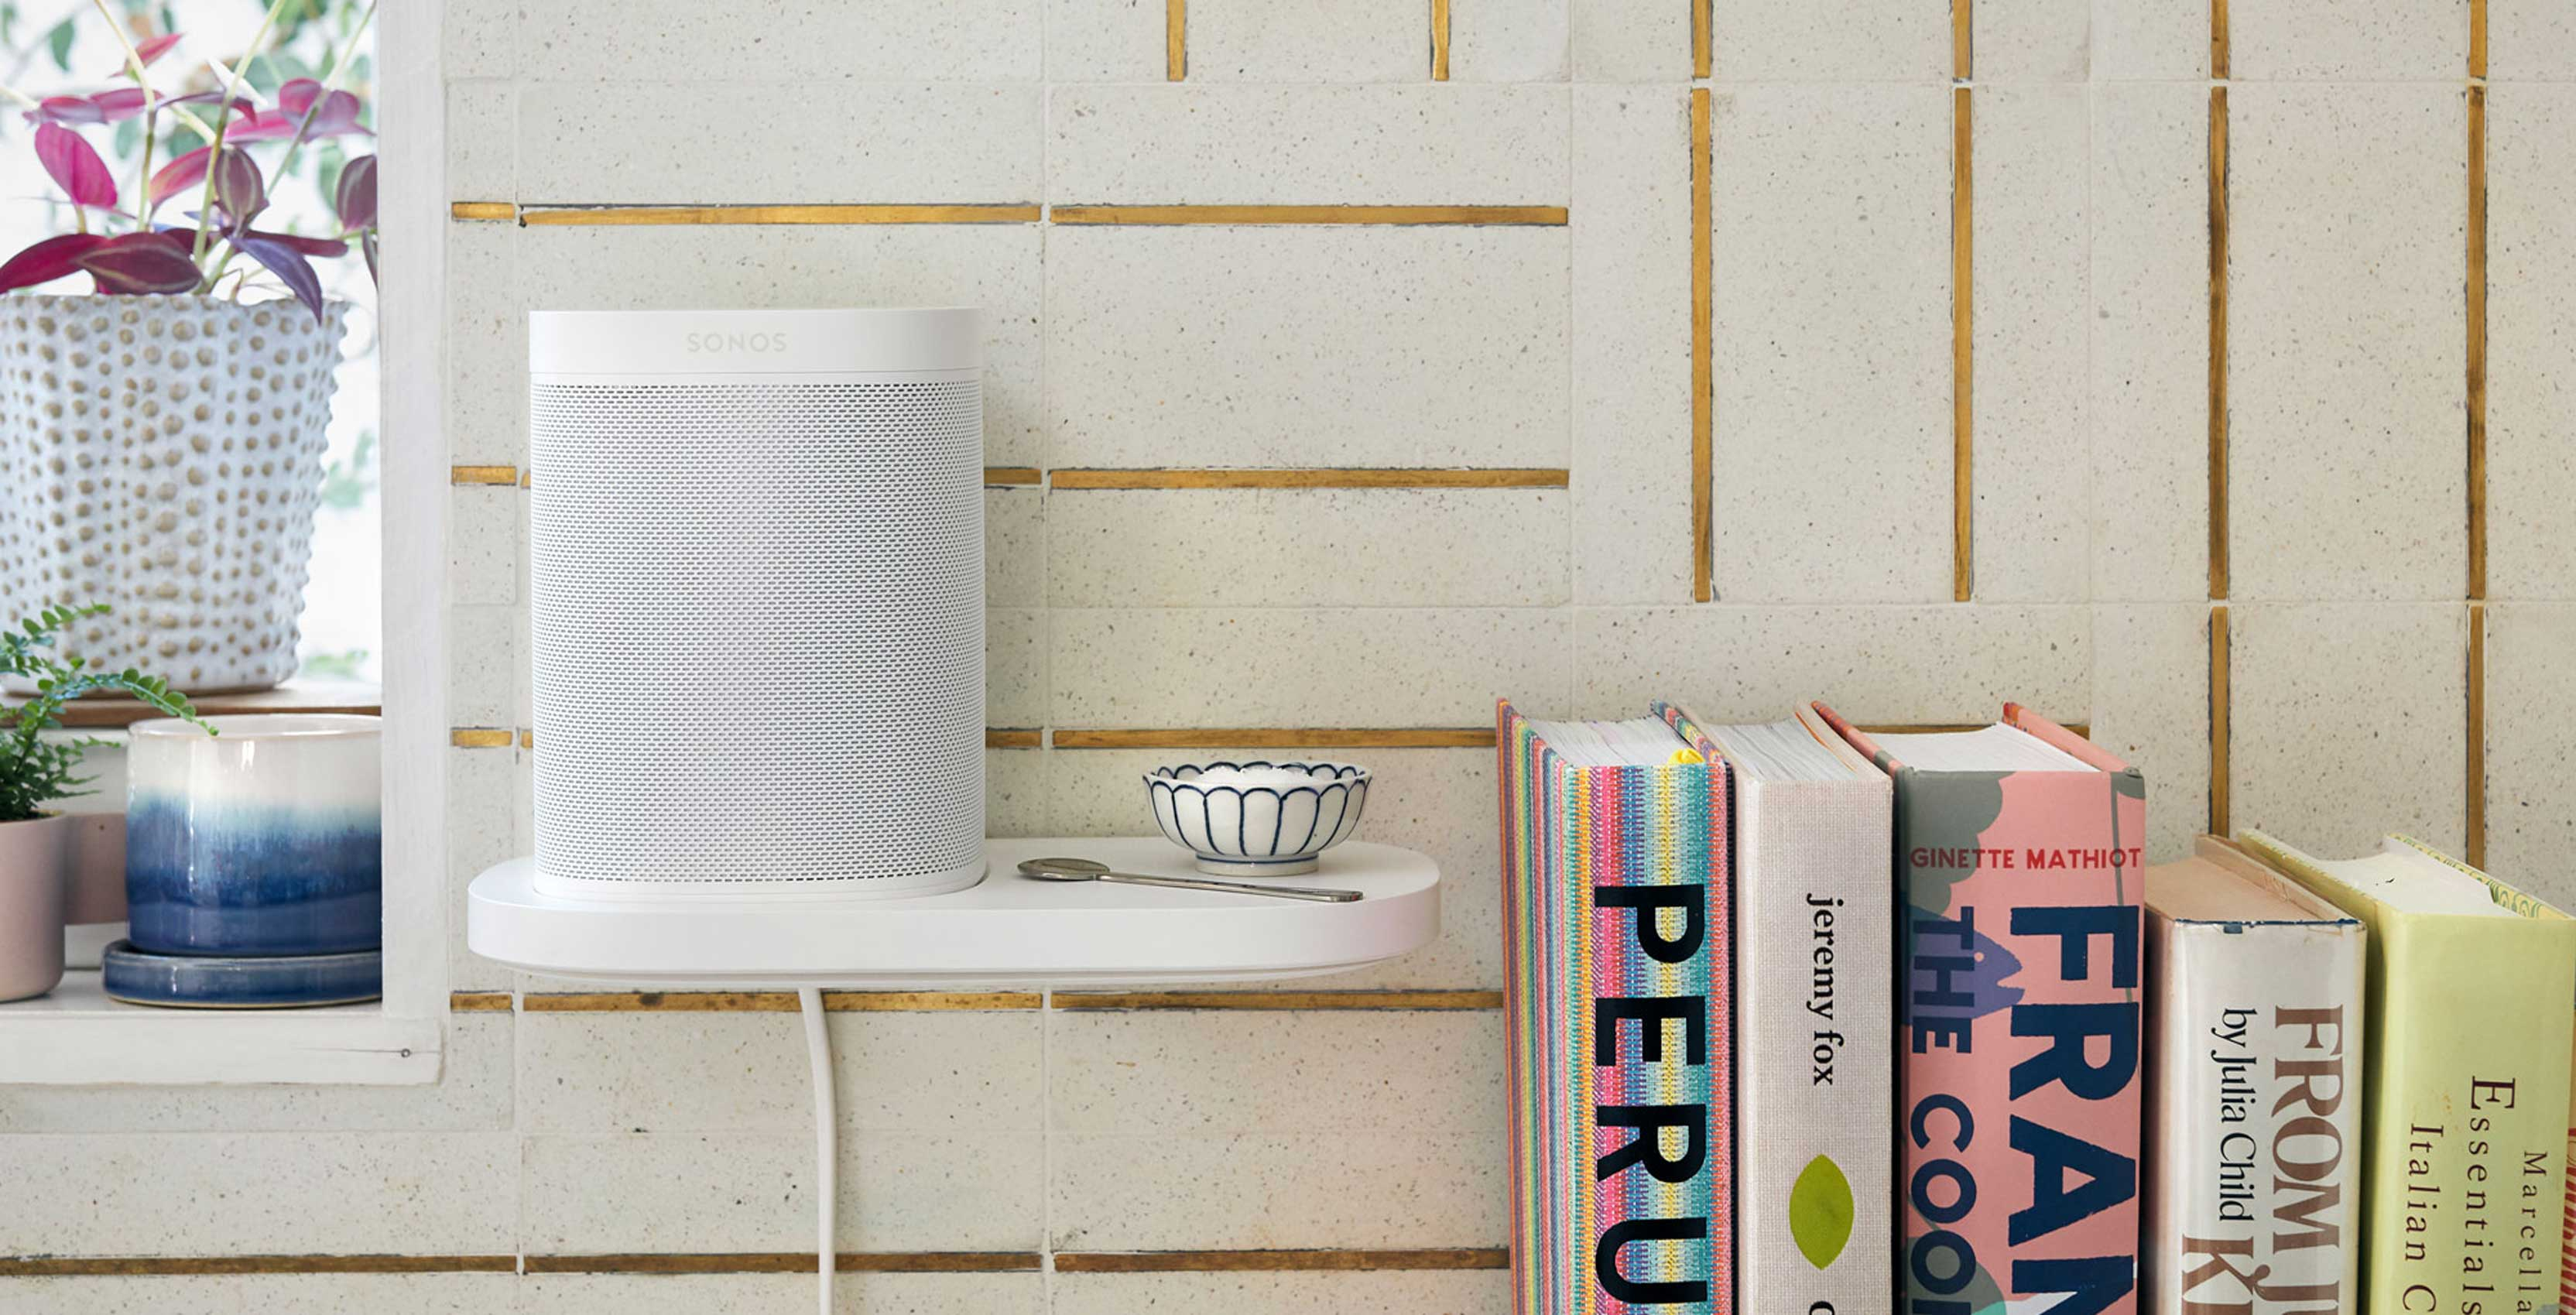 Sonos One and Play:1 shelf, stand and power cables now available in Canada